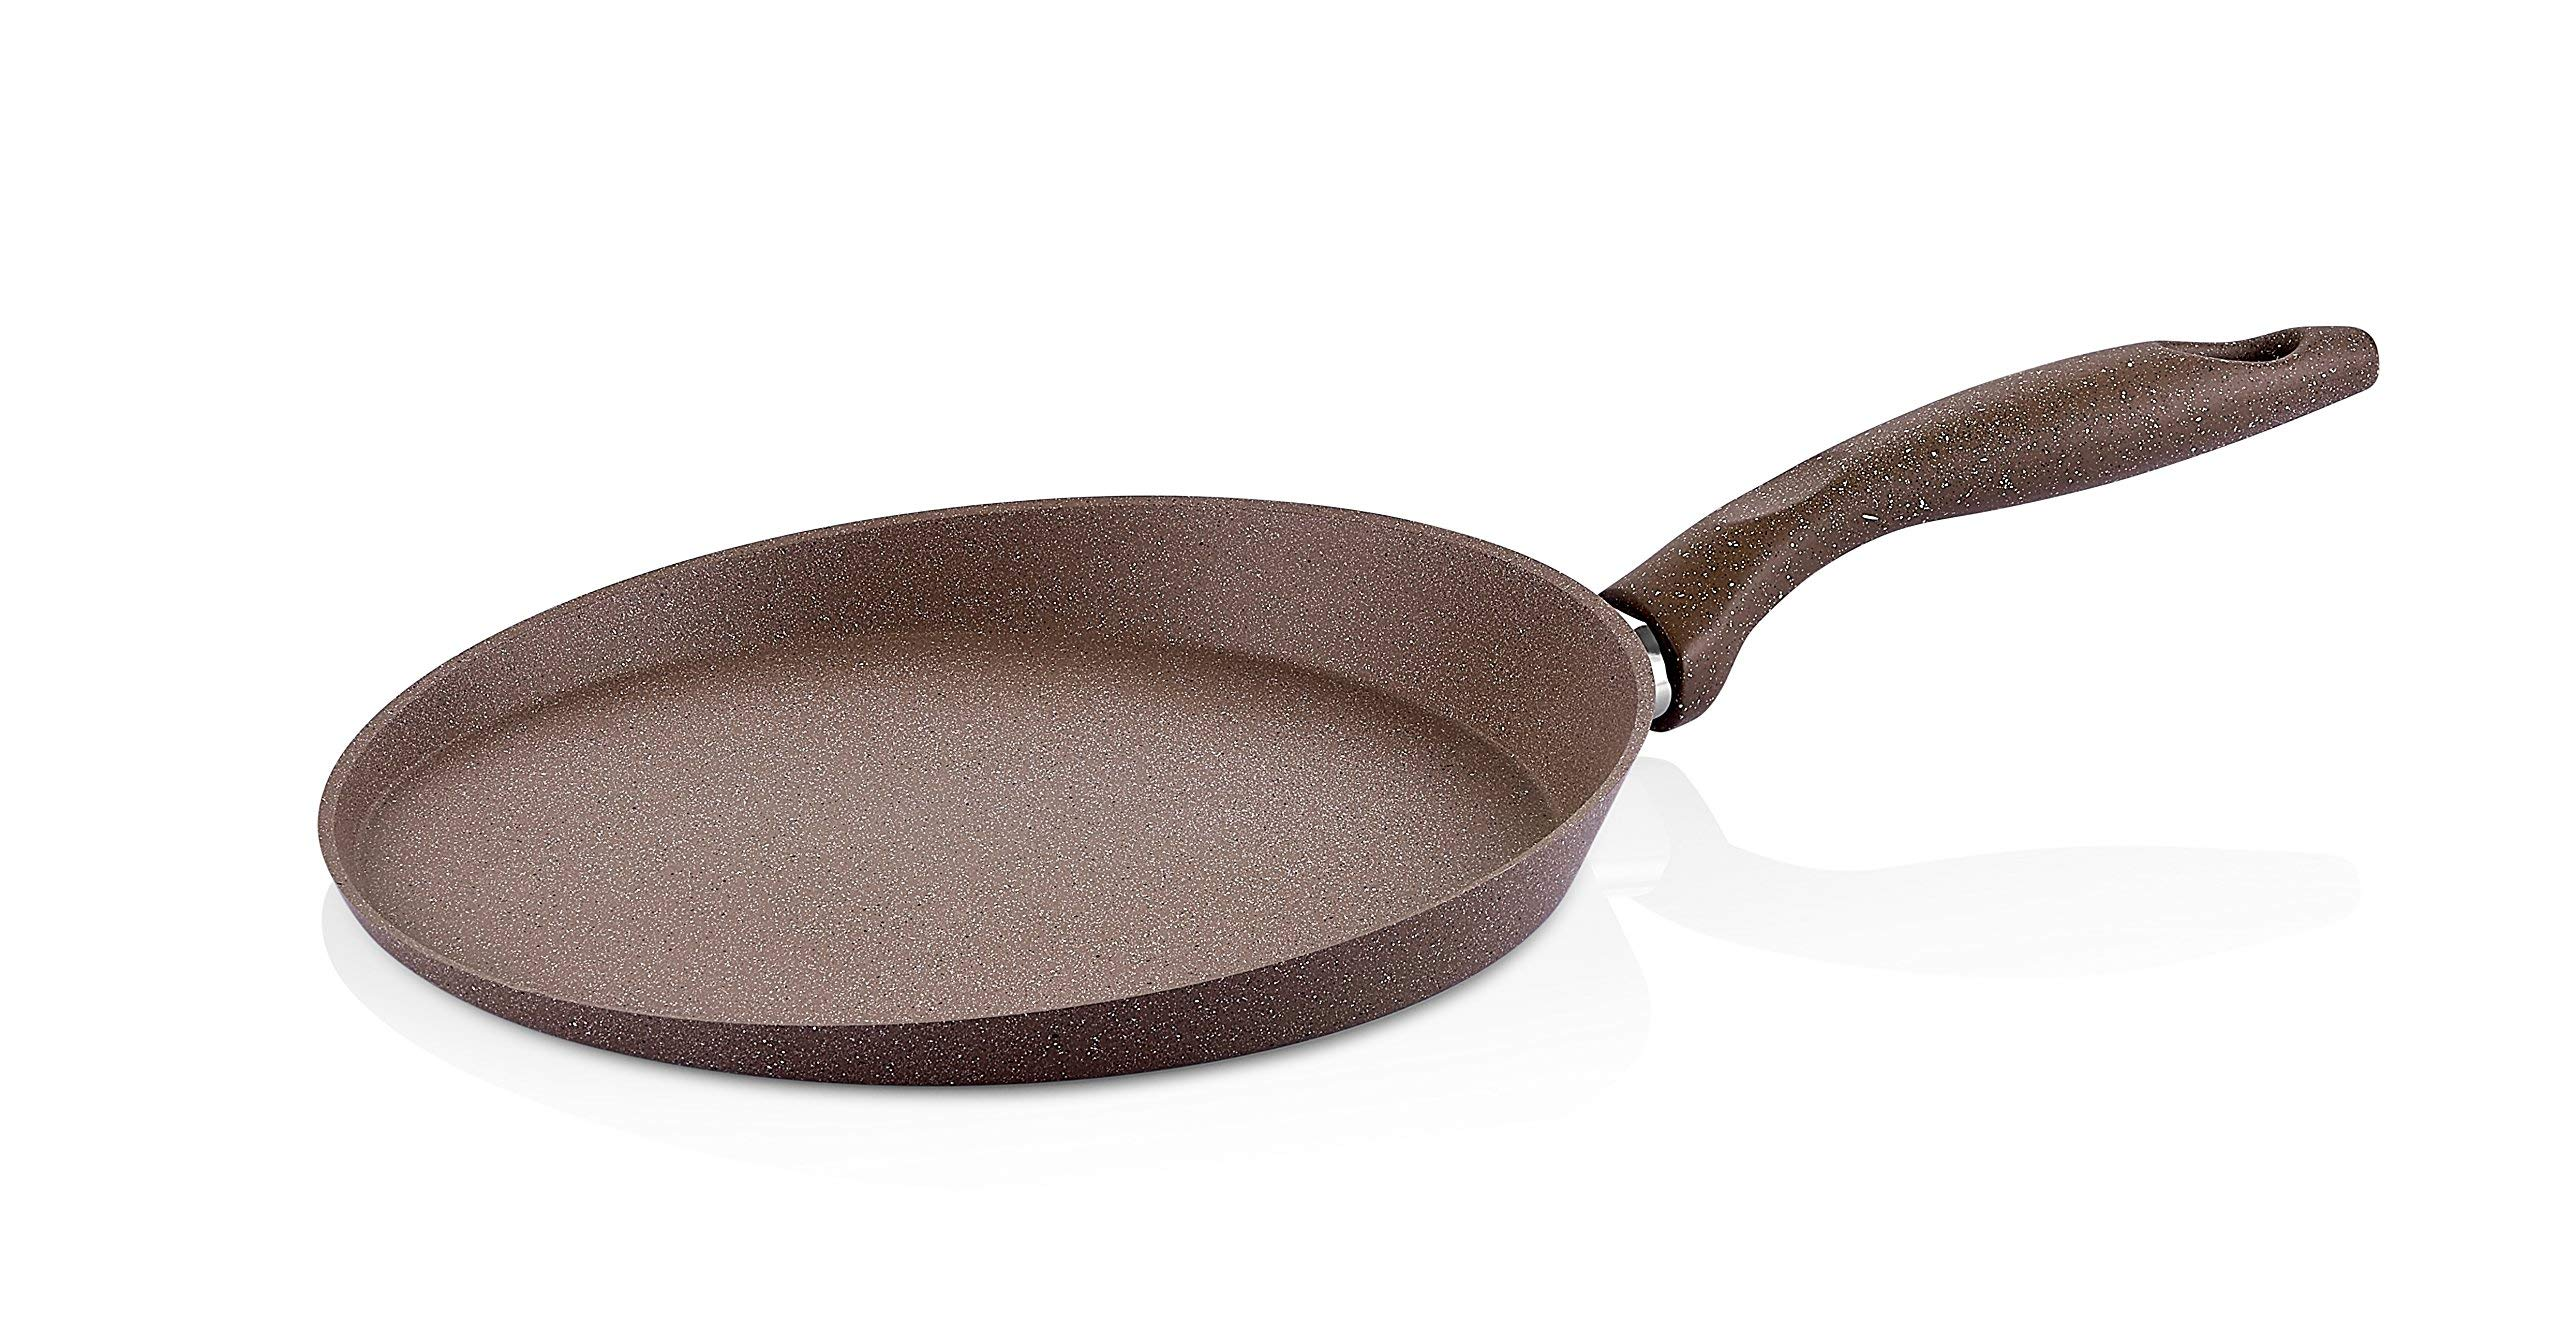 Granite Crepe Pan Non-Stick Scratch-Resistant Forged Aluminum w/ QuanTanium Coating | Even Heating Cooking Dishware (11-Inch)